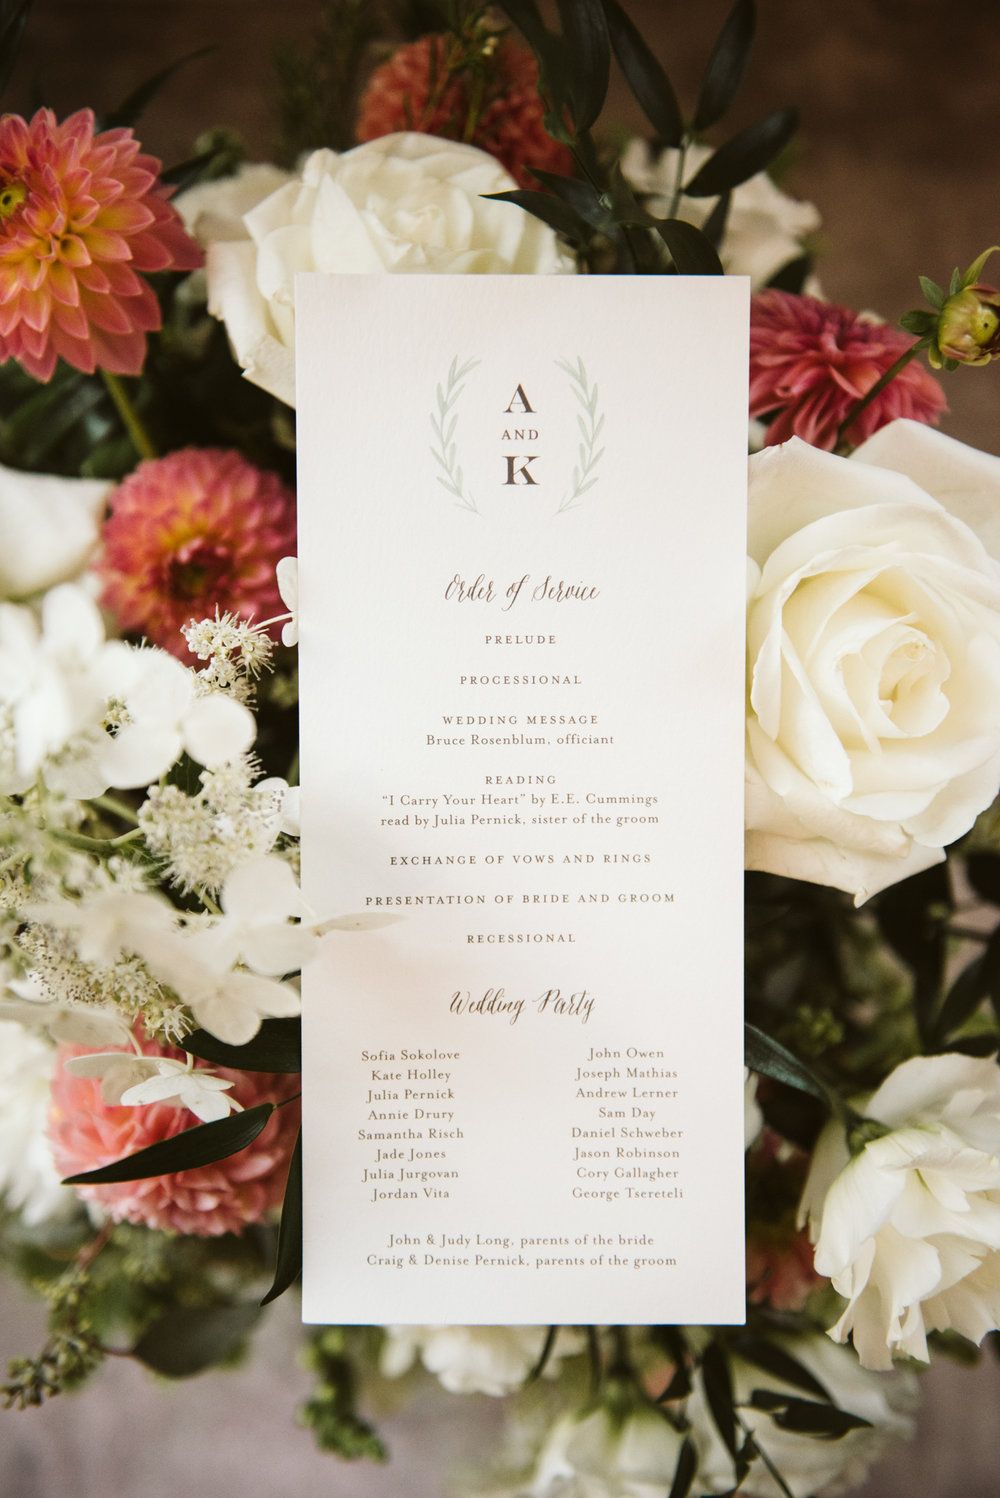 classic and timeless wedding programs sitting in flower arrangement